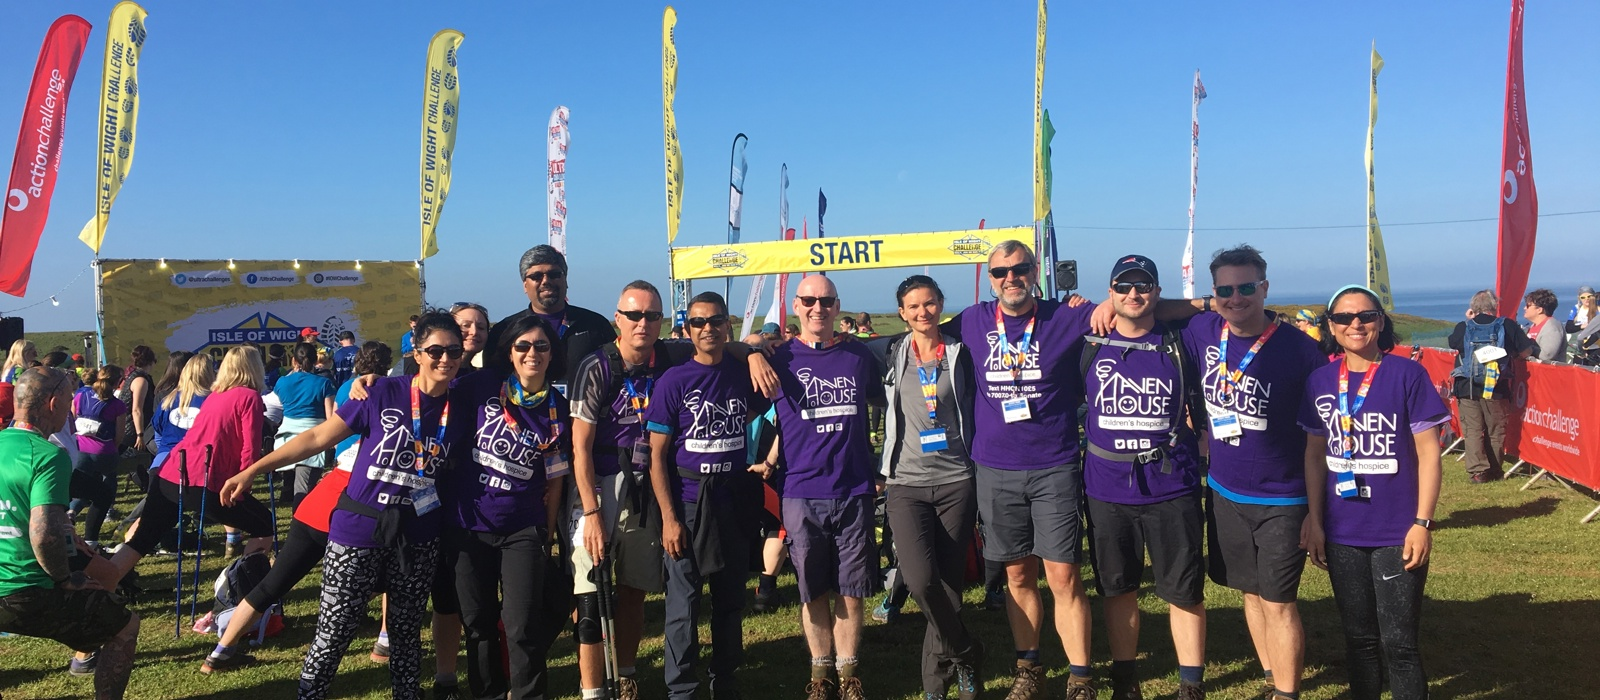 Thames Path and Isle of Wight 100km Team Challenges